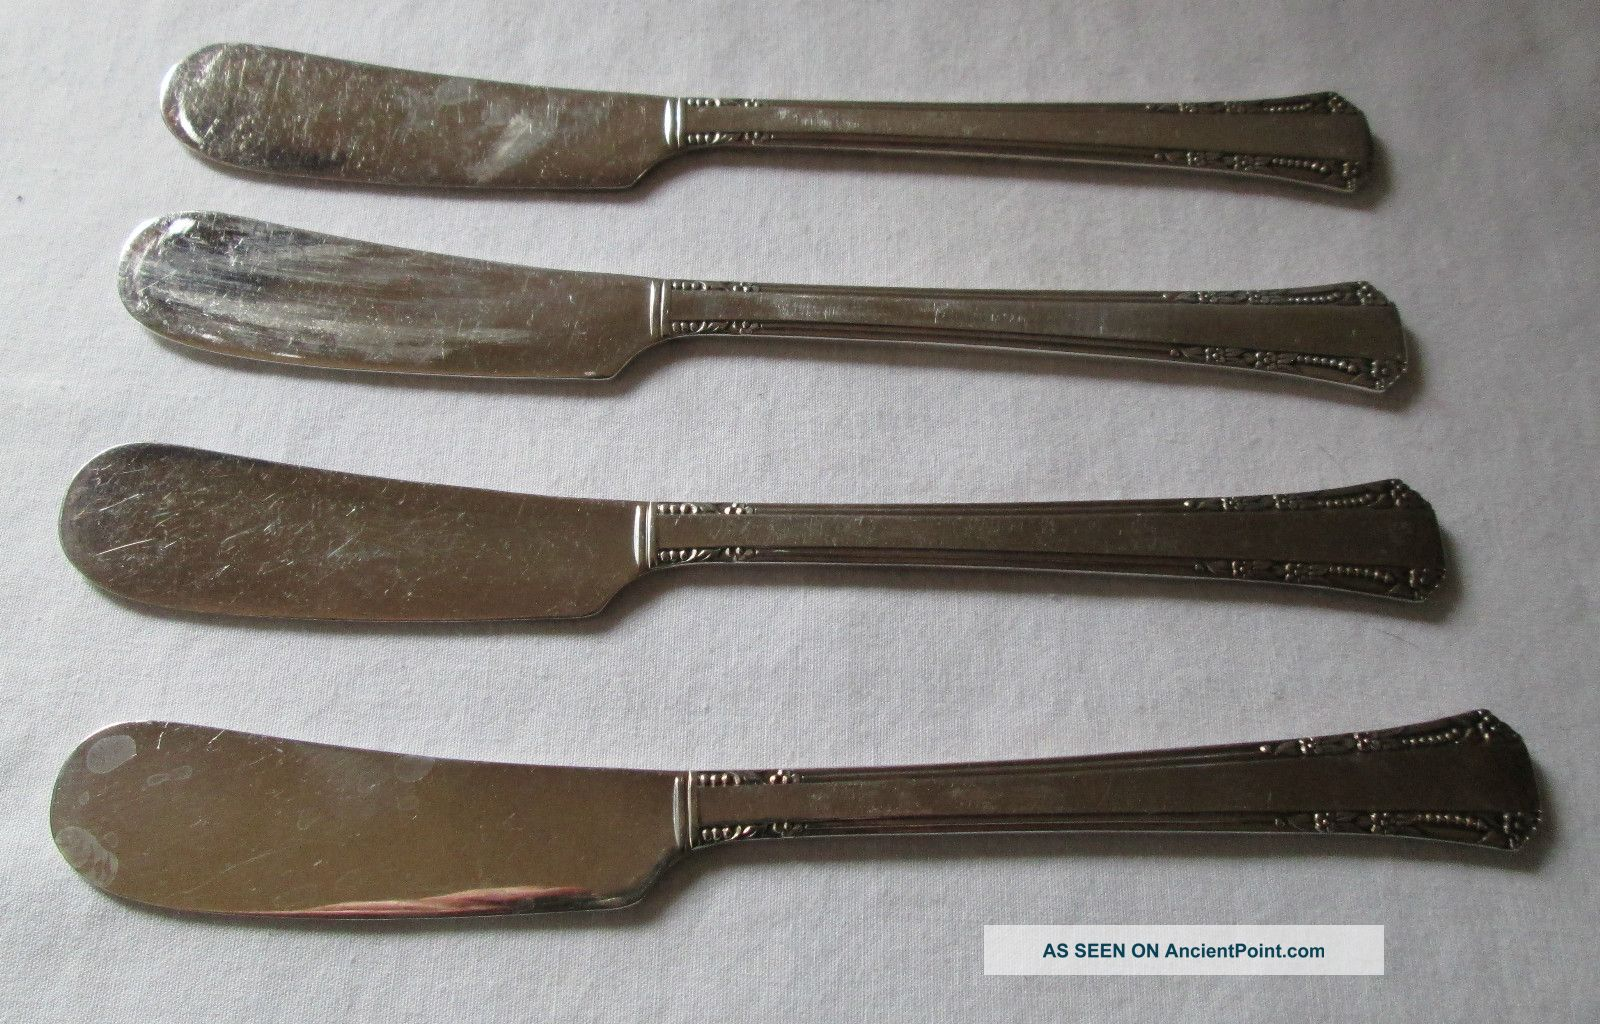 1881 Rogers Oneida Flatware Silverplate Del Mar 4 Butter Spreader Knives Oneida/Wm. A. Rogers photo